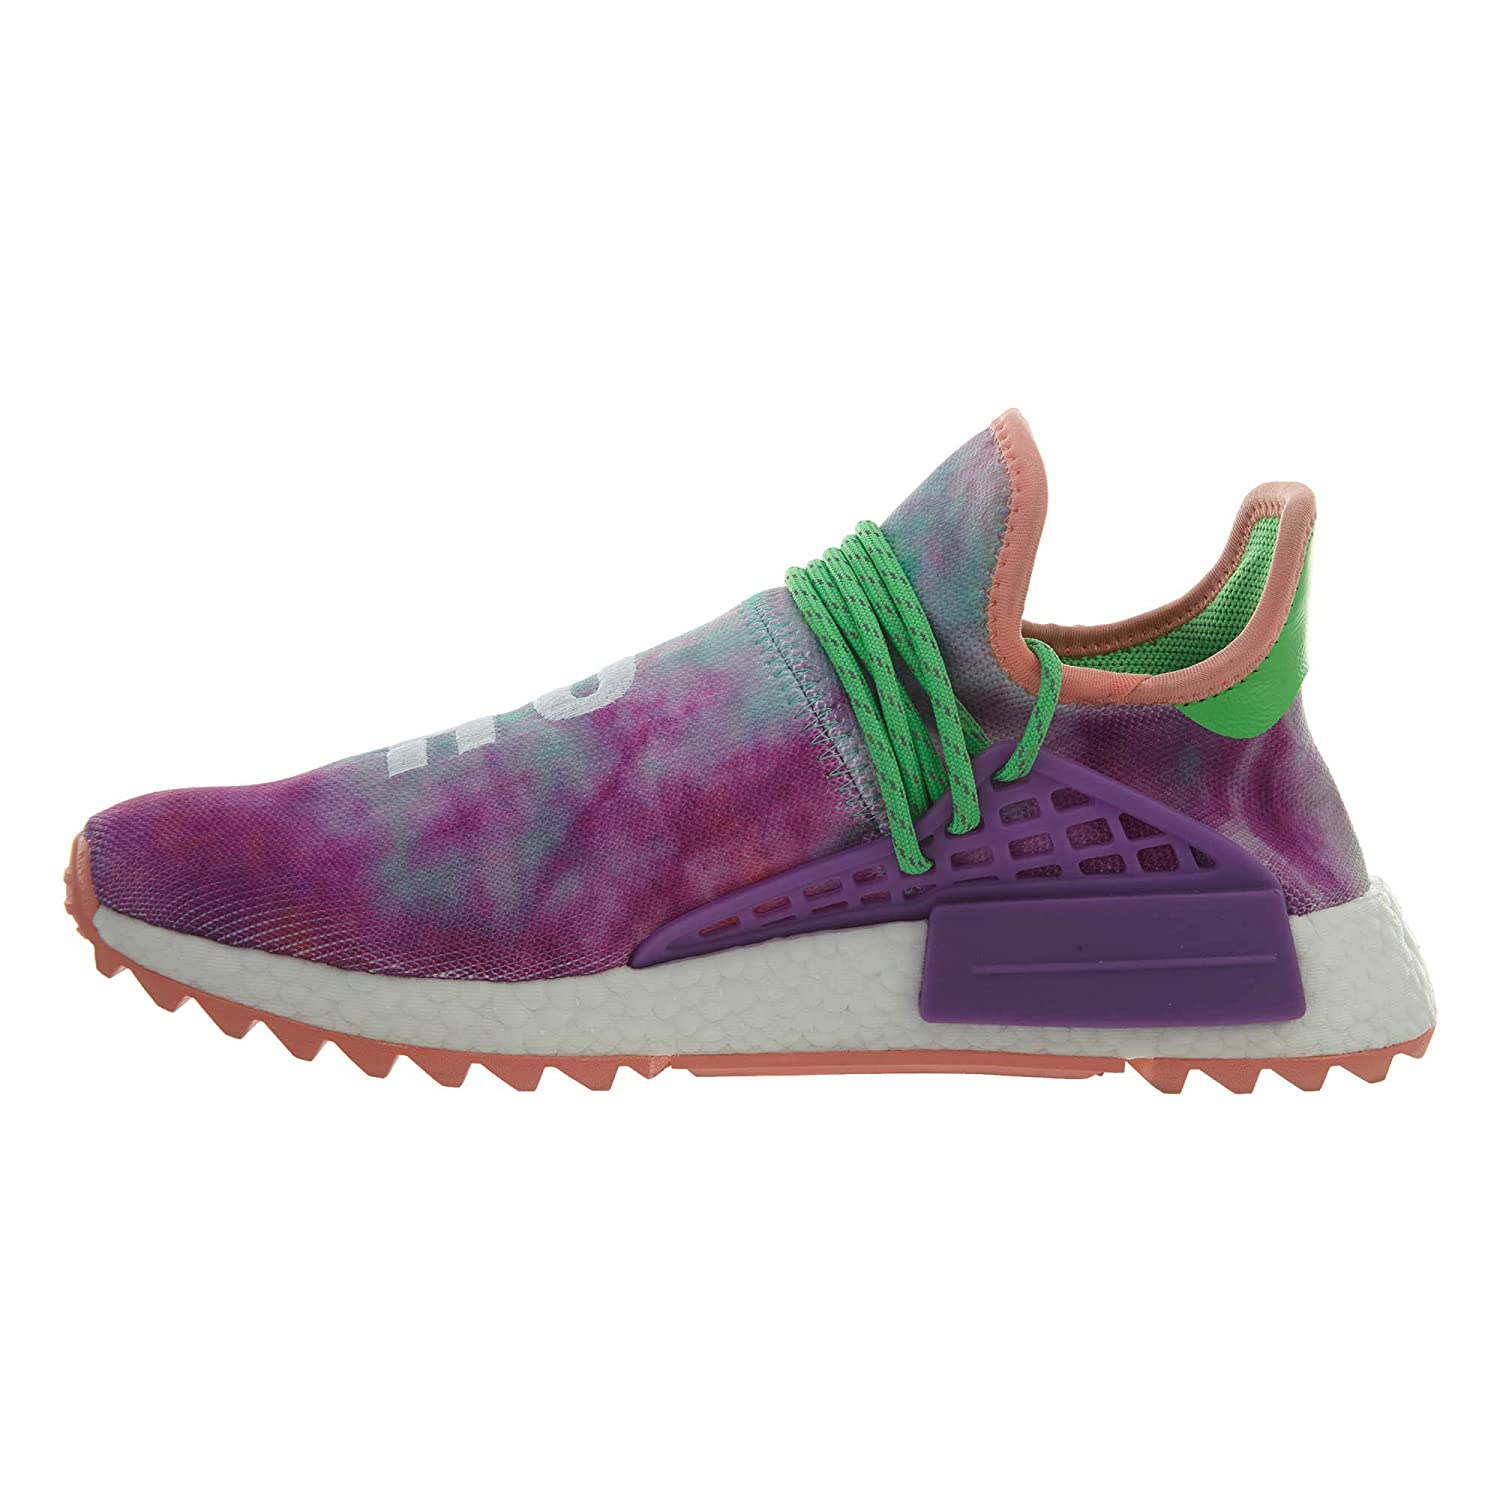 new styles 49568 4d808 adidas PW HU Holi NMD MC Pink Glow - AC7362 Amazon.ca Shoes  Handbags